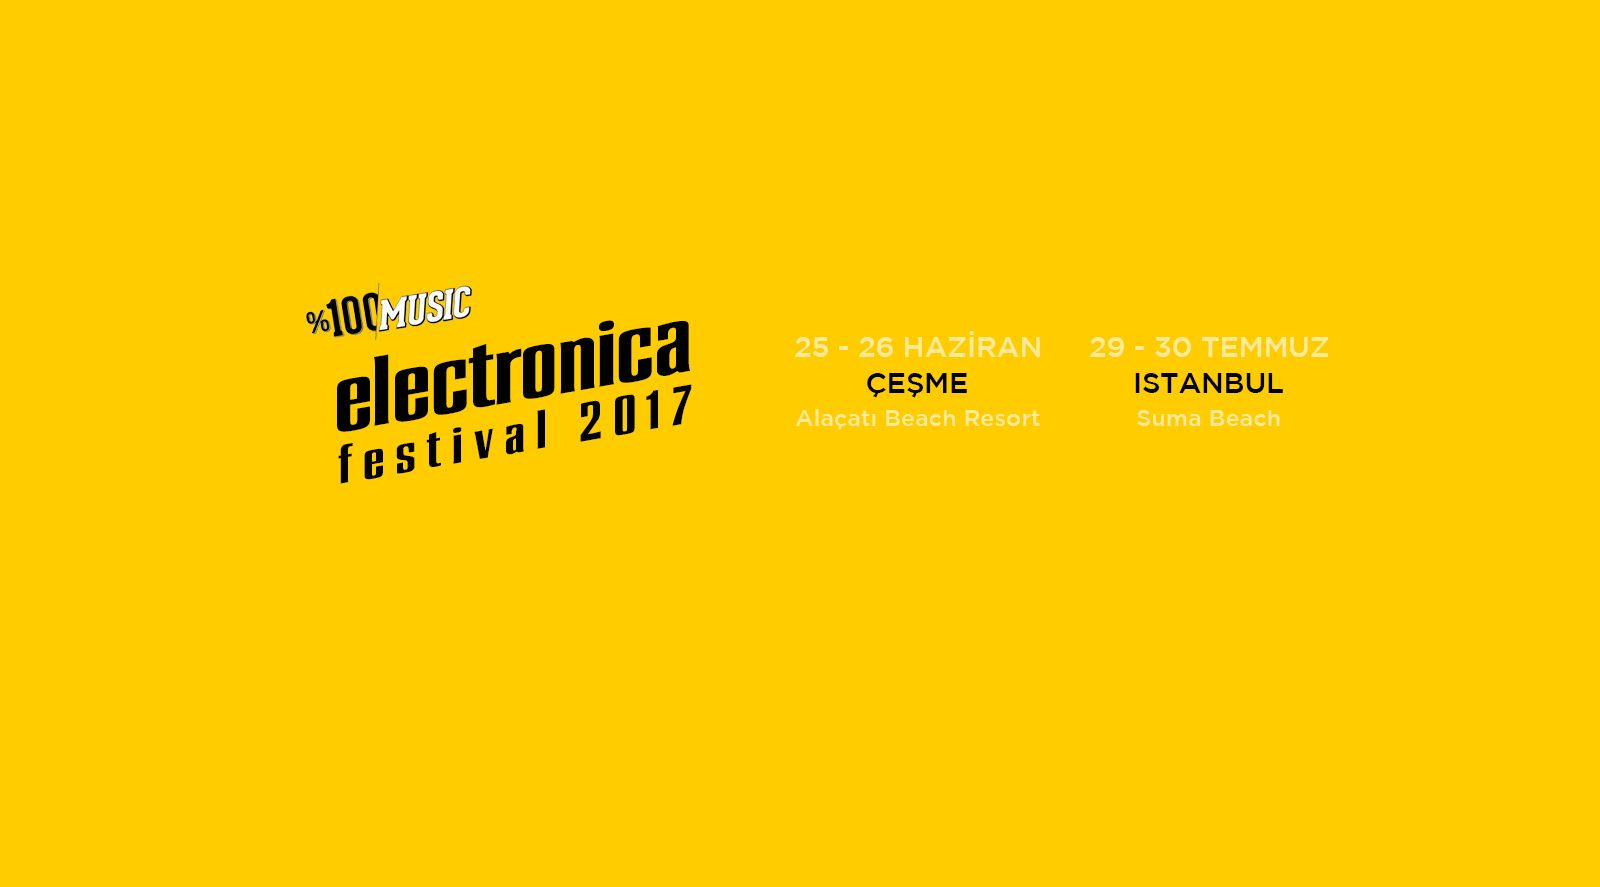 %100 Music: Electronica Festival